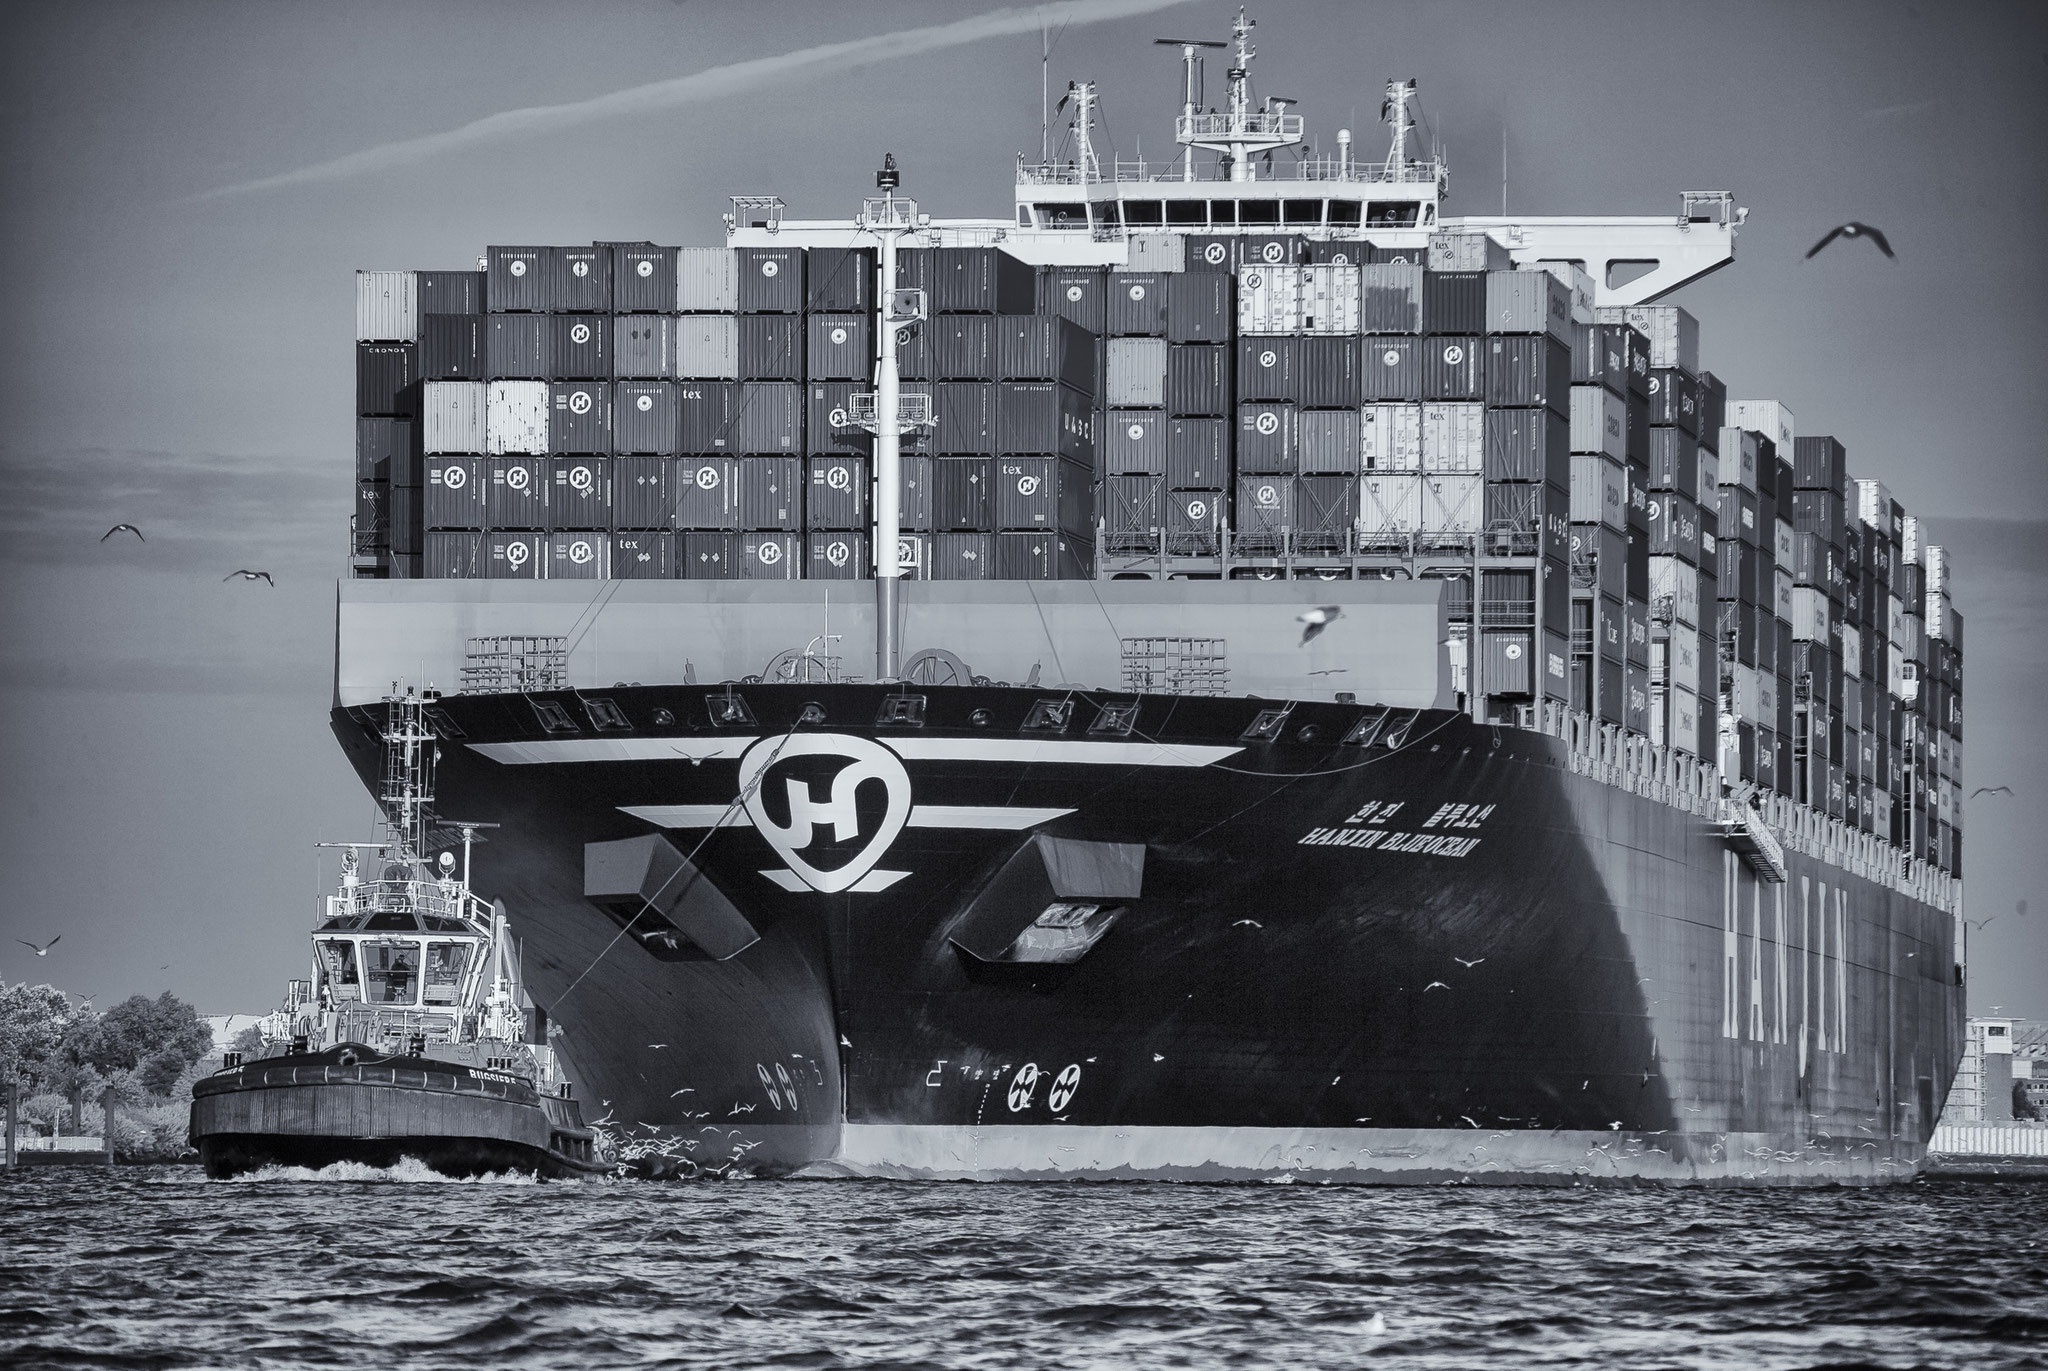 © Hans G. Lehmann | Containership and pilot on the river Elbe in Hamburg